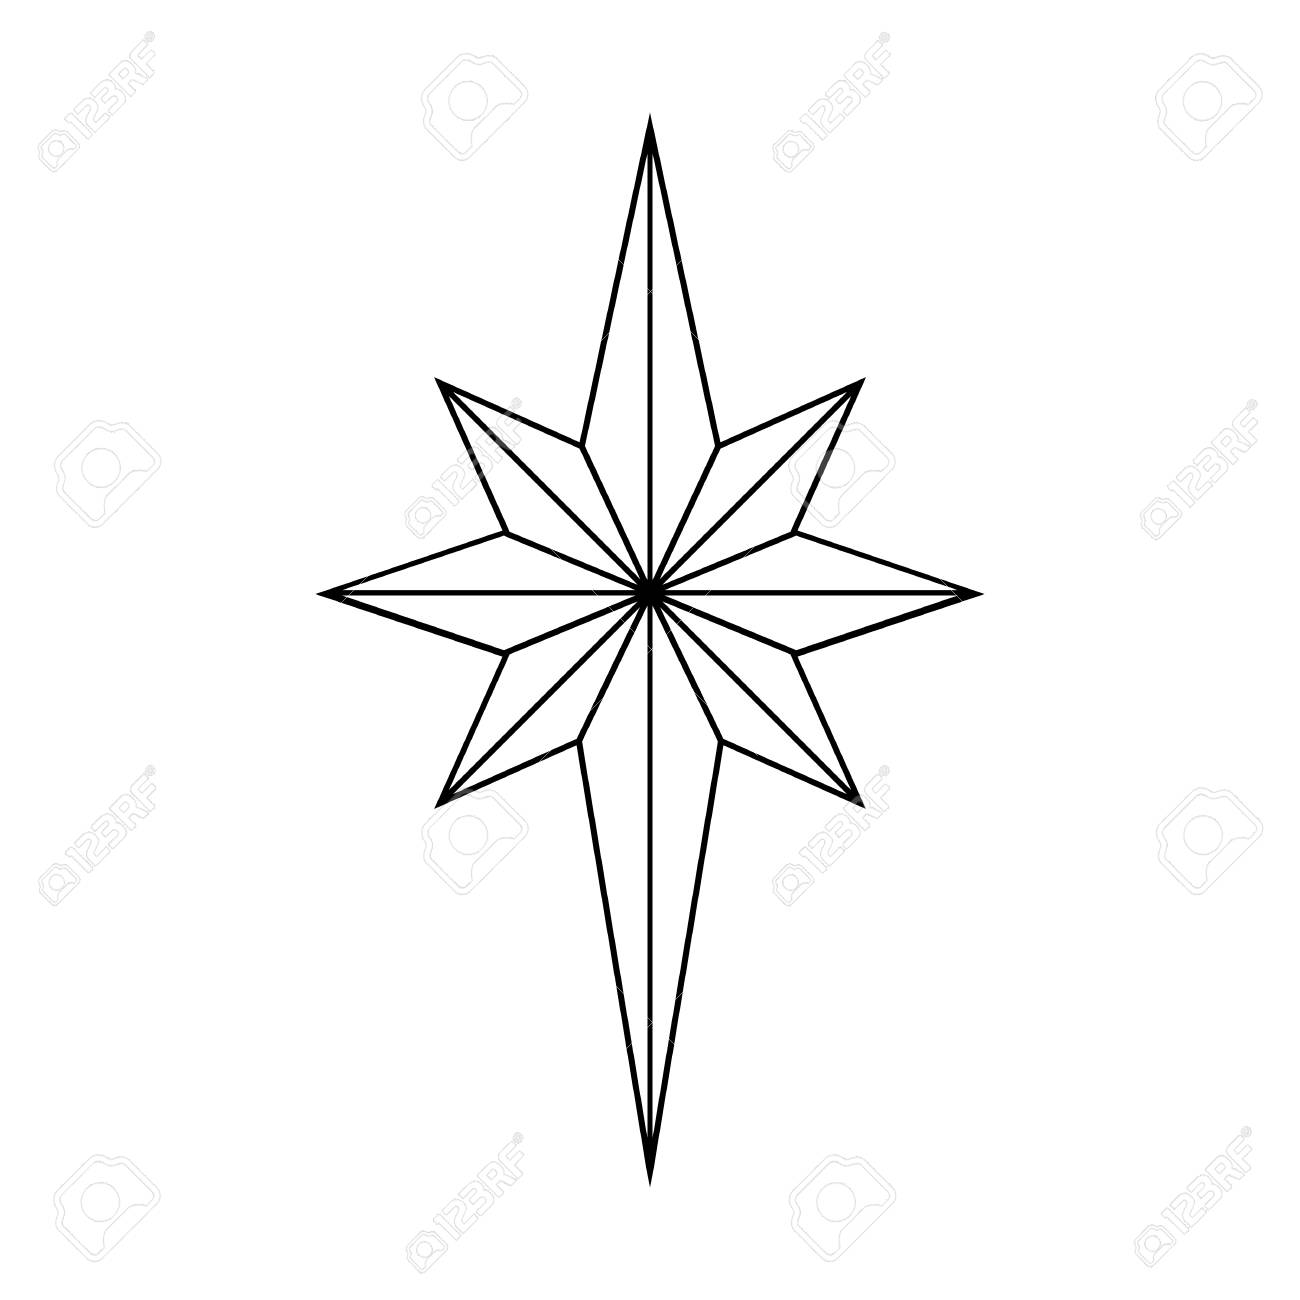 Star Outline Christmas Isolated On White Background Vector Illustration Stock